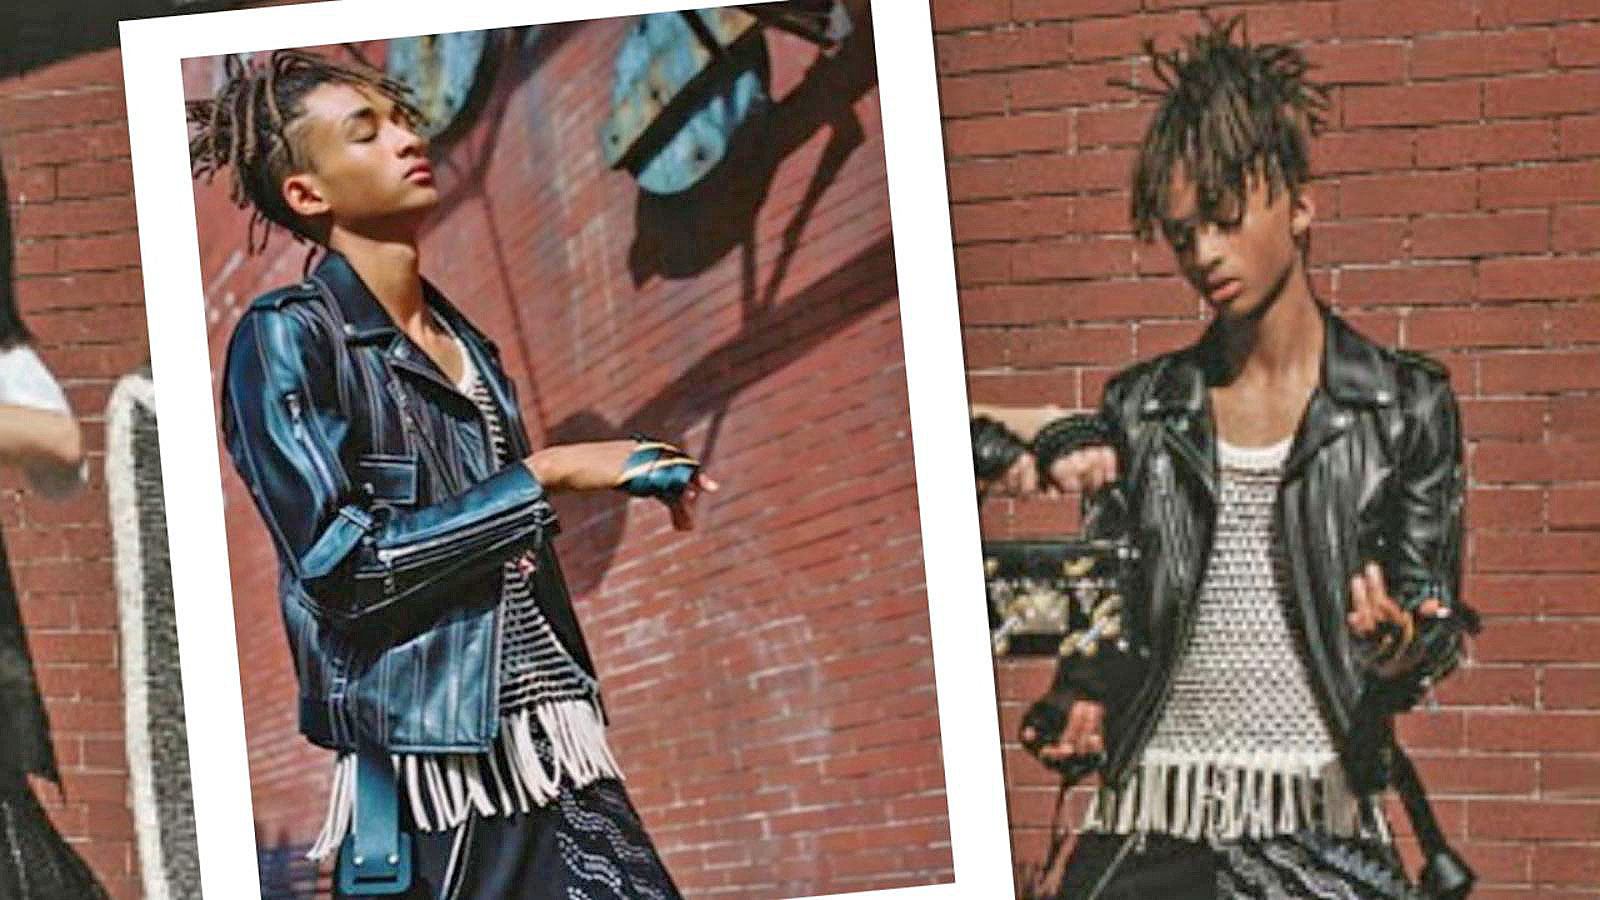 Jaden smith videos at abc news video archive at abcnews video jaden smith sports skirt for louis vuittons womenswear campaign voltagebd Choice Image